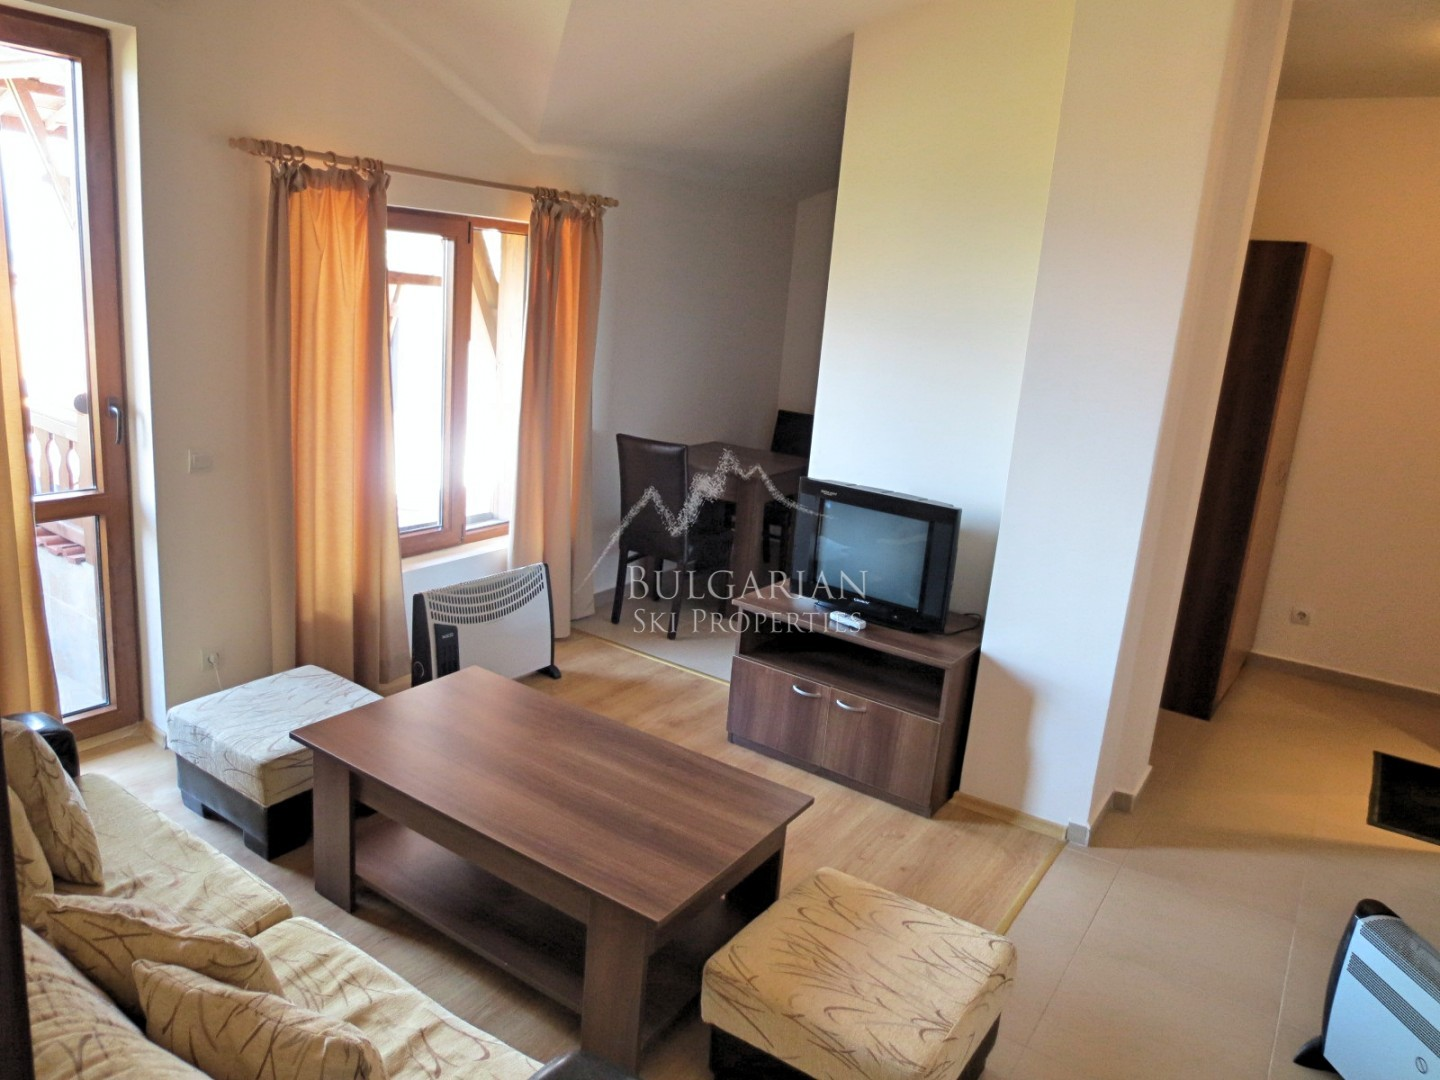 Rent an apartment in Bologna by the sea Bulgaria